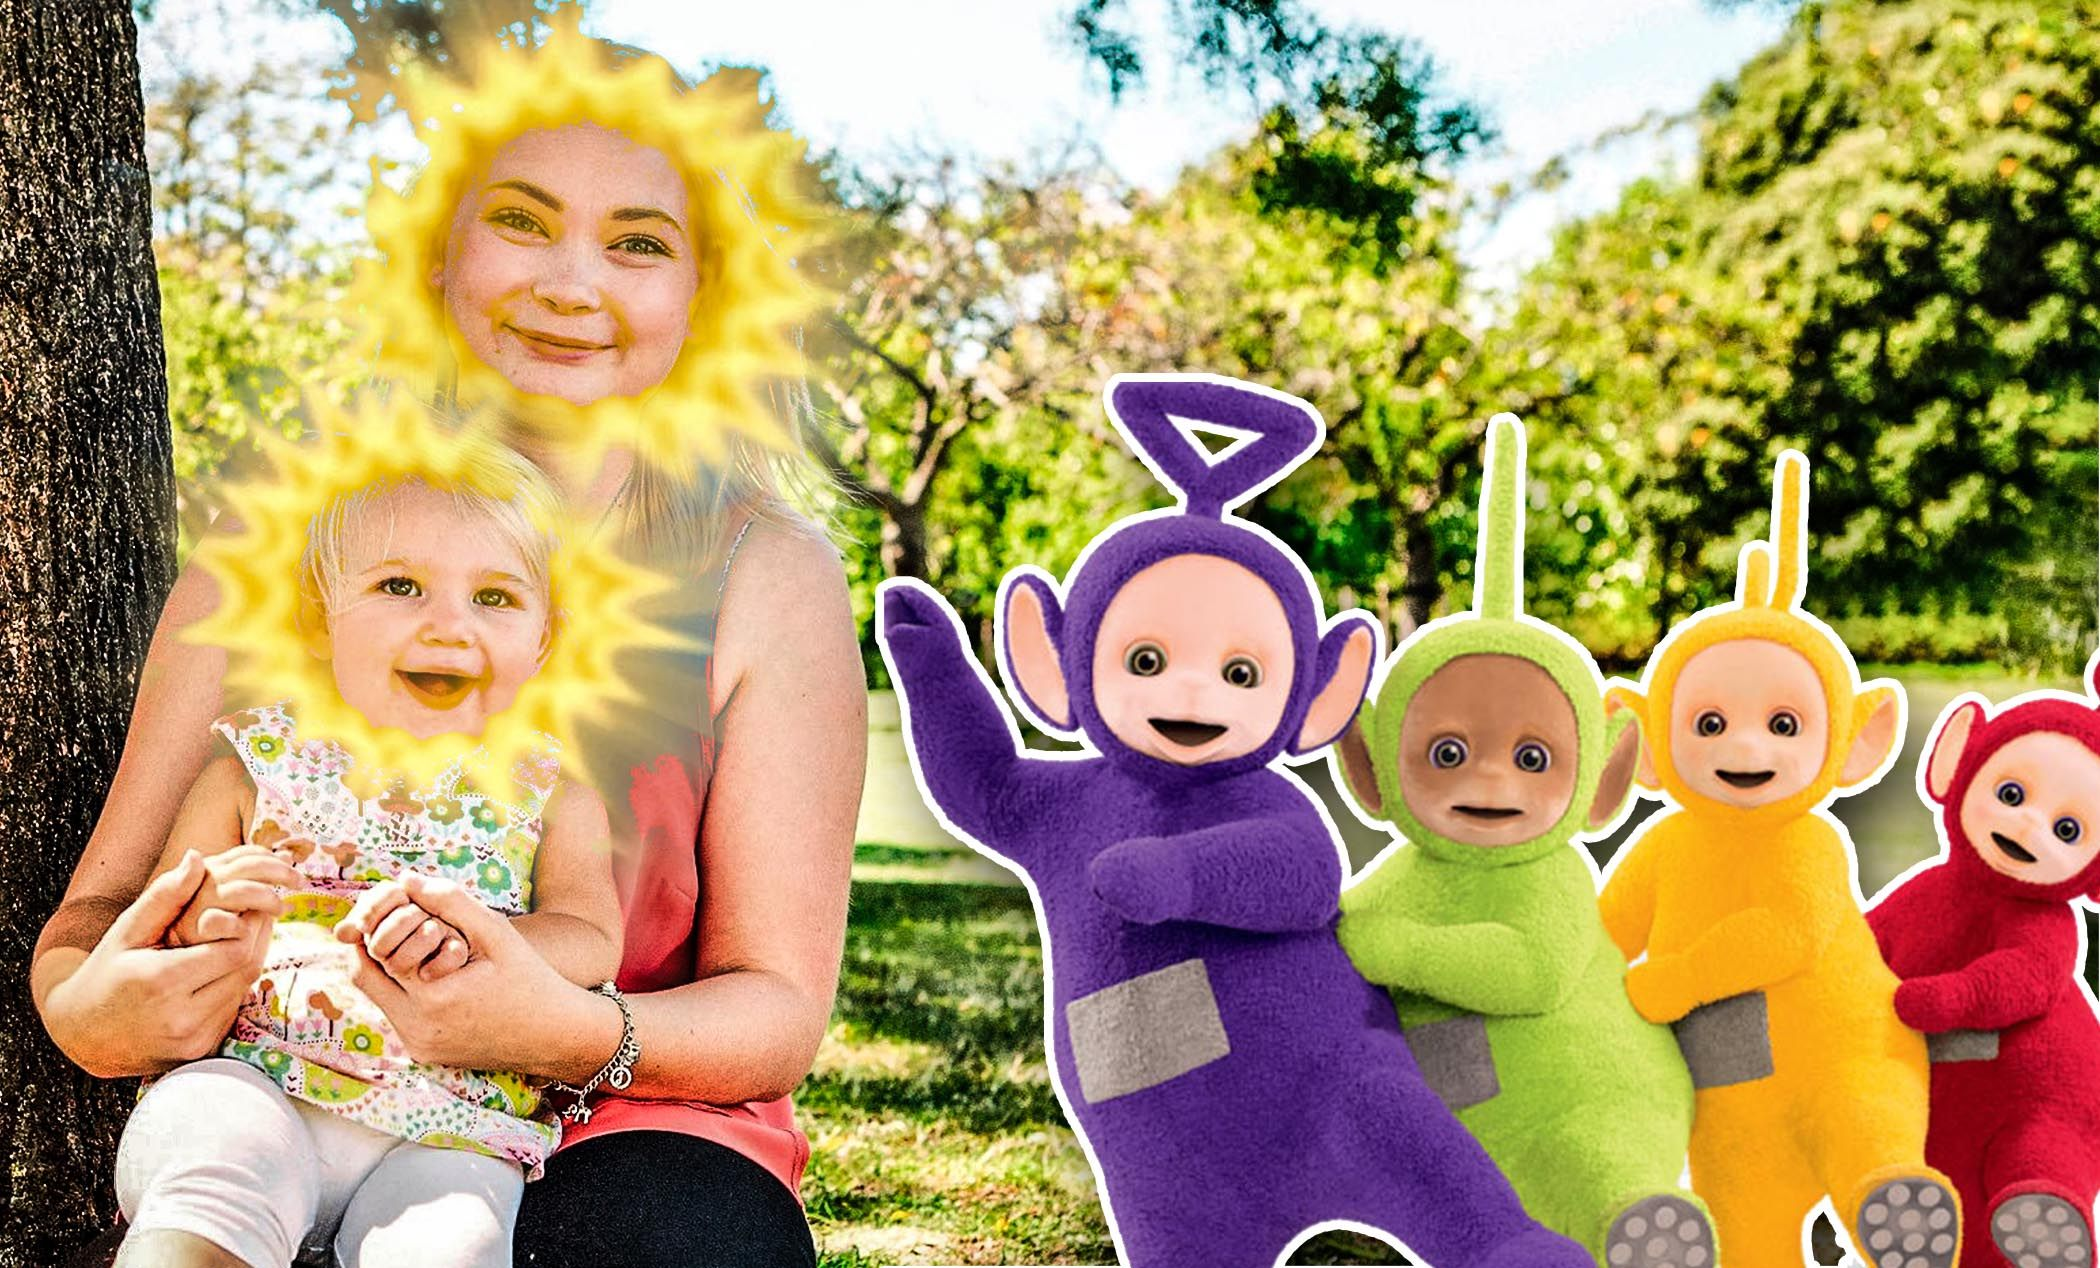 the-internet-assumed-the-teletubbies-sun-baby-had-a-baby-but_xqqg.jpg.3a712cba6b1d0e43ccce6101e57fac54.jpg